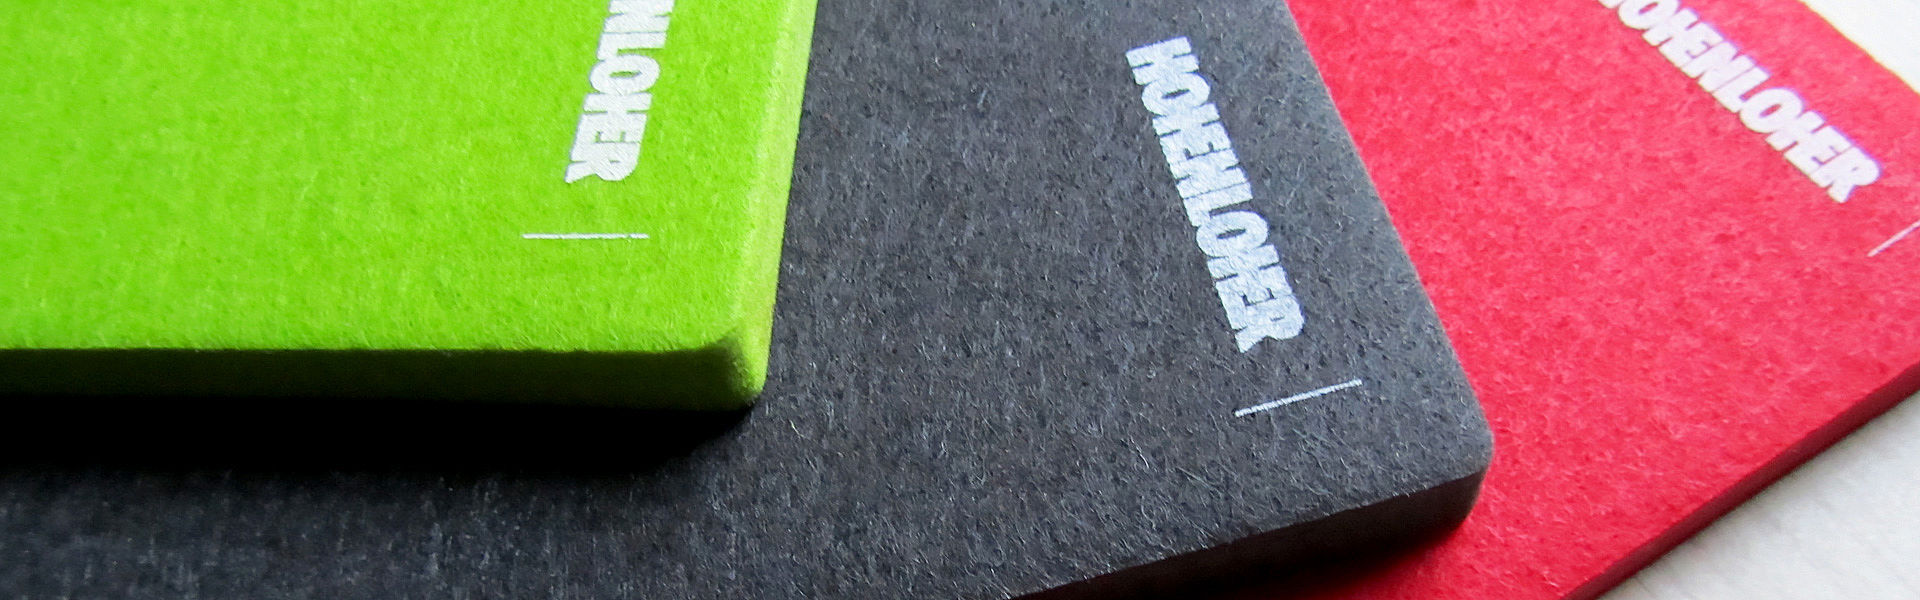 Magnetic acoustic felt in green, grey, red